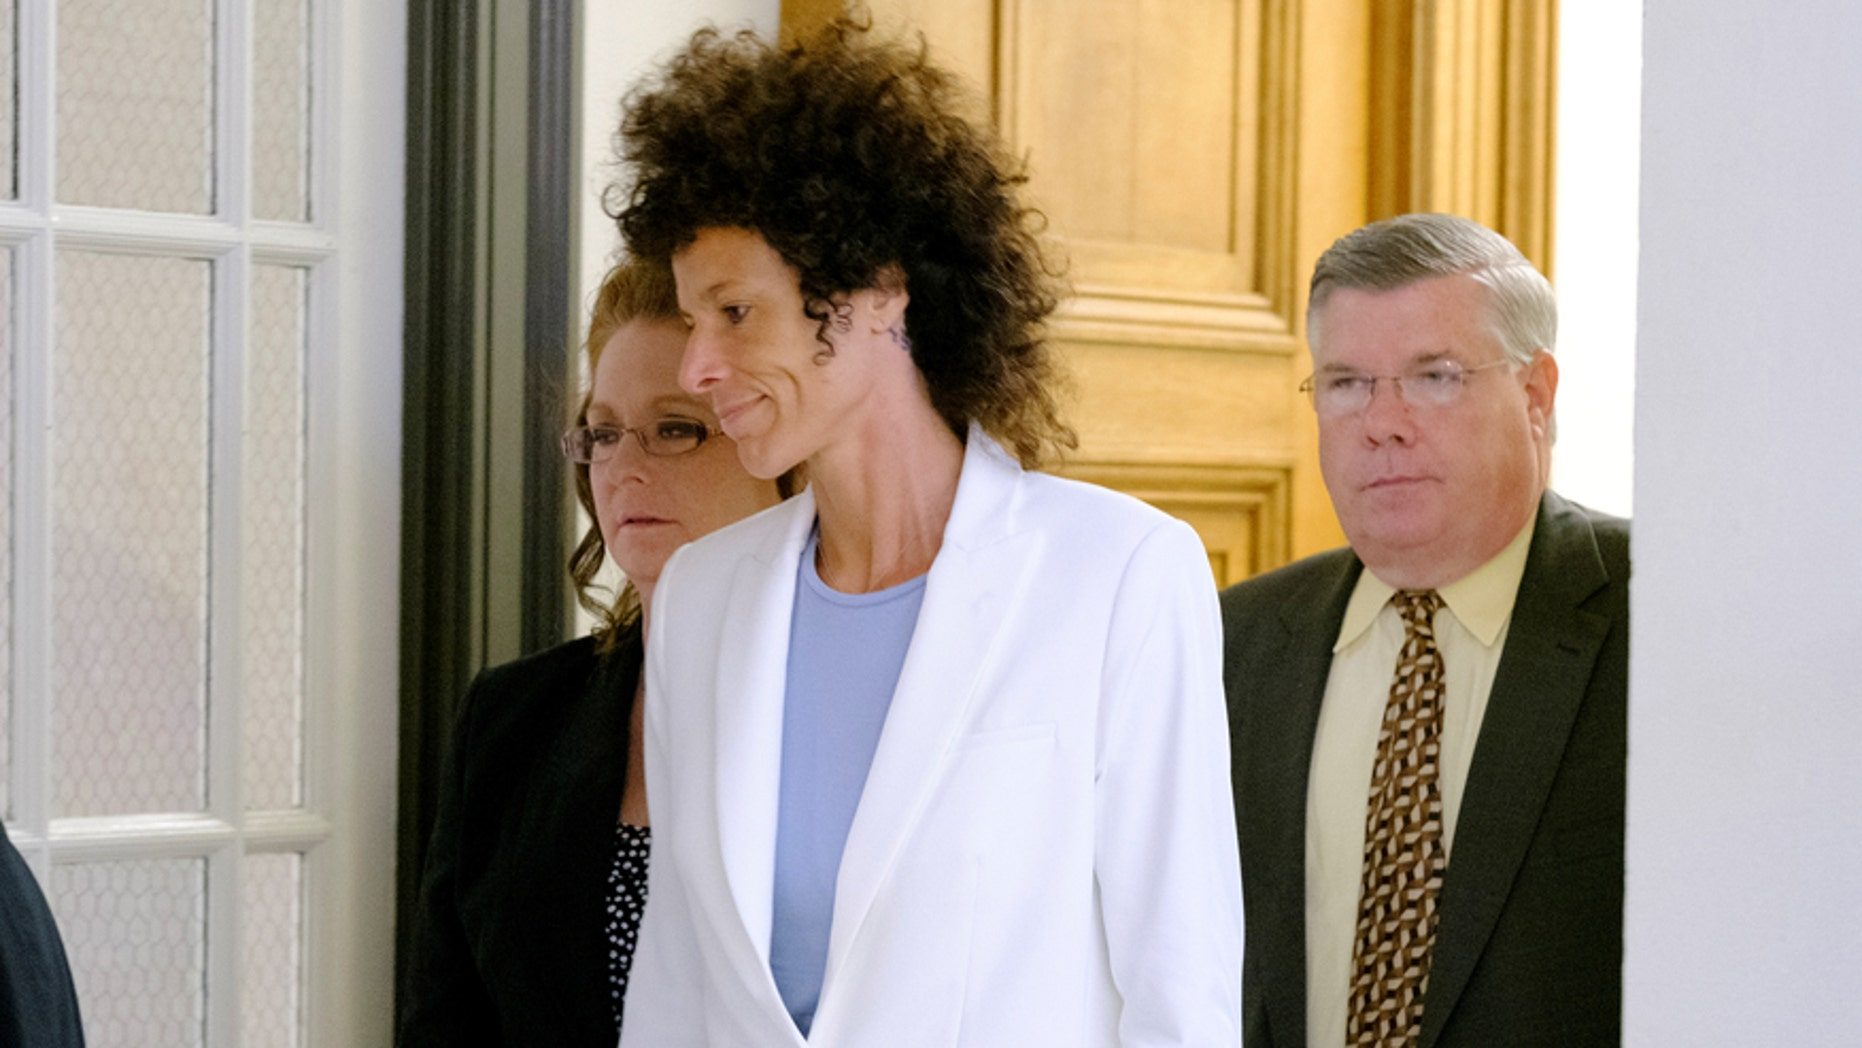 Bill Cosby accuser Andrea Constand leaves after the judge declared a mistrial in Cosby's sexual assault trial at the Montgomery County Courthouse in Norristown, Pennsylvania, U.S. June 17, 2017. REUTERS/Ed Hille/Pool - RTS17HDL